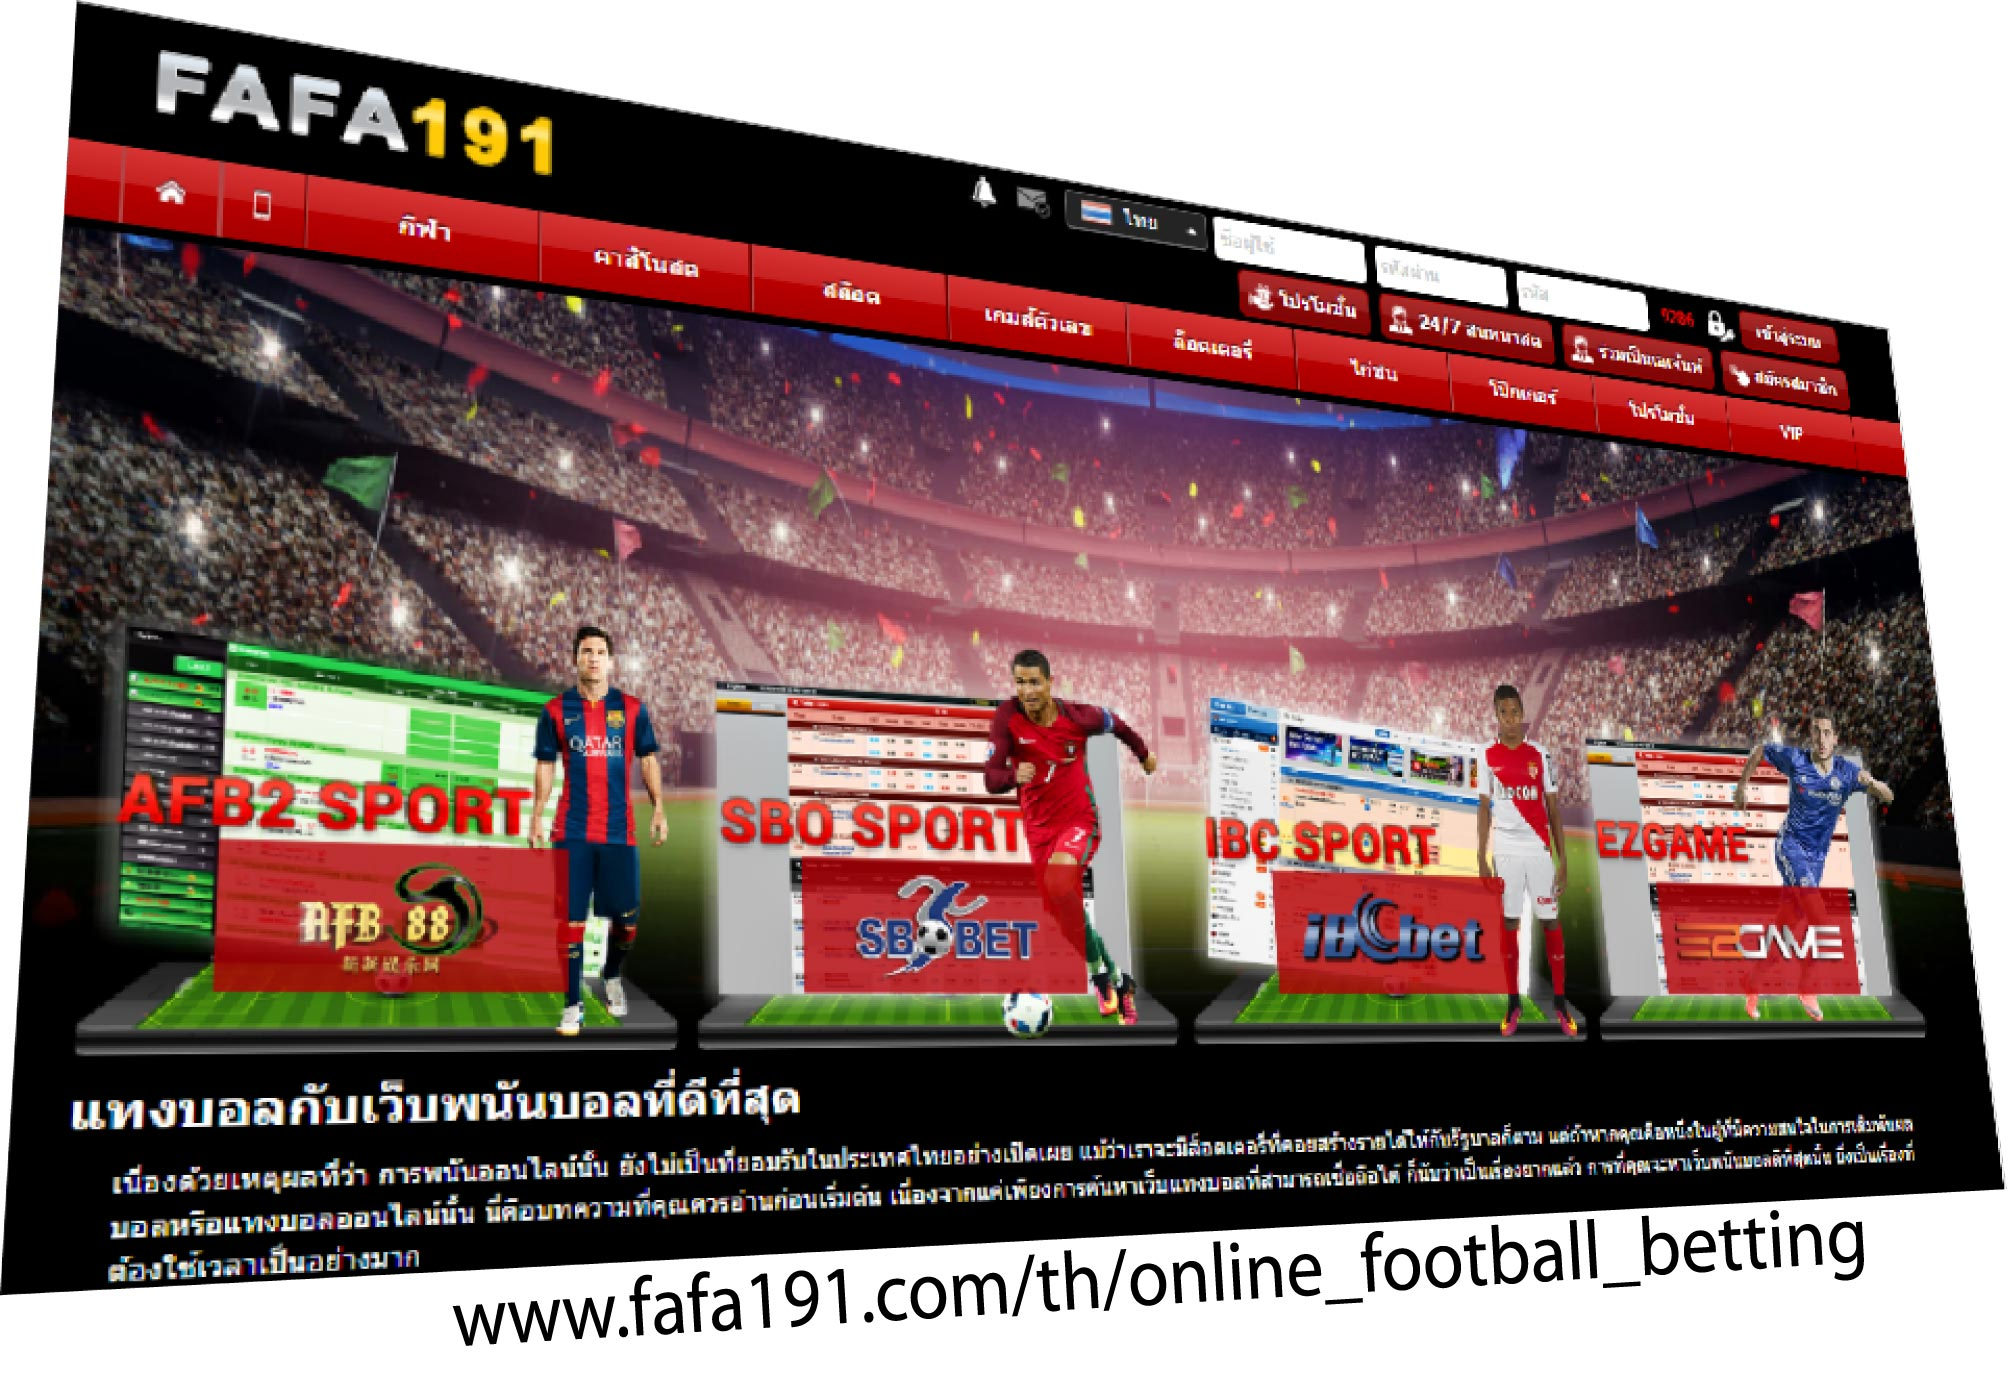 Fafa191 Online Football Betting in Thailand